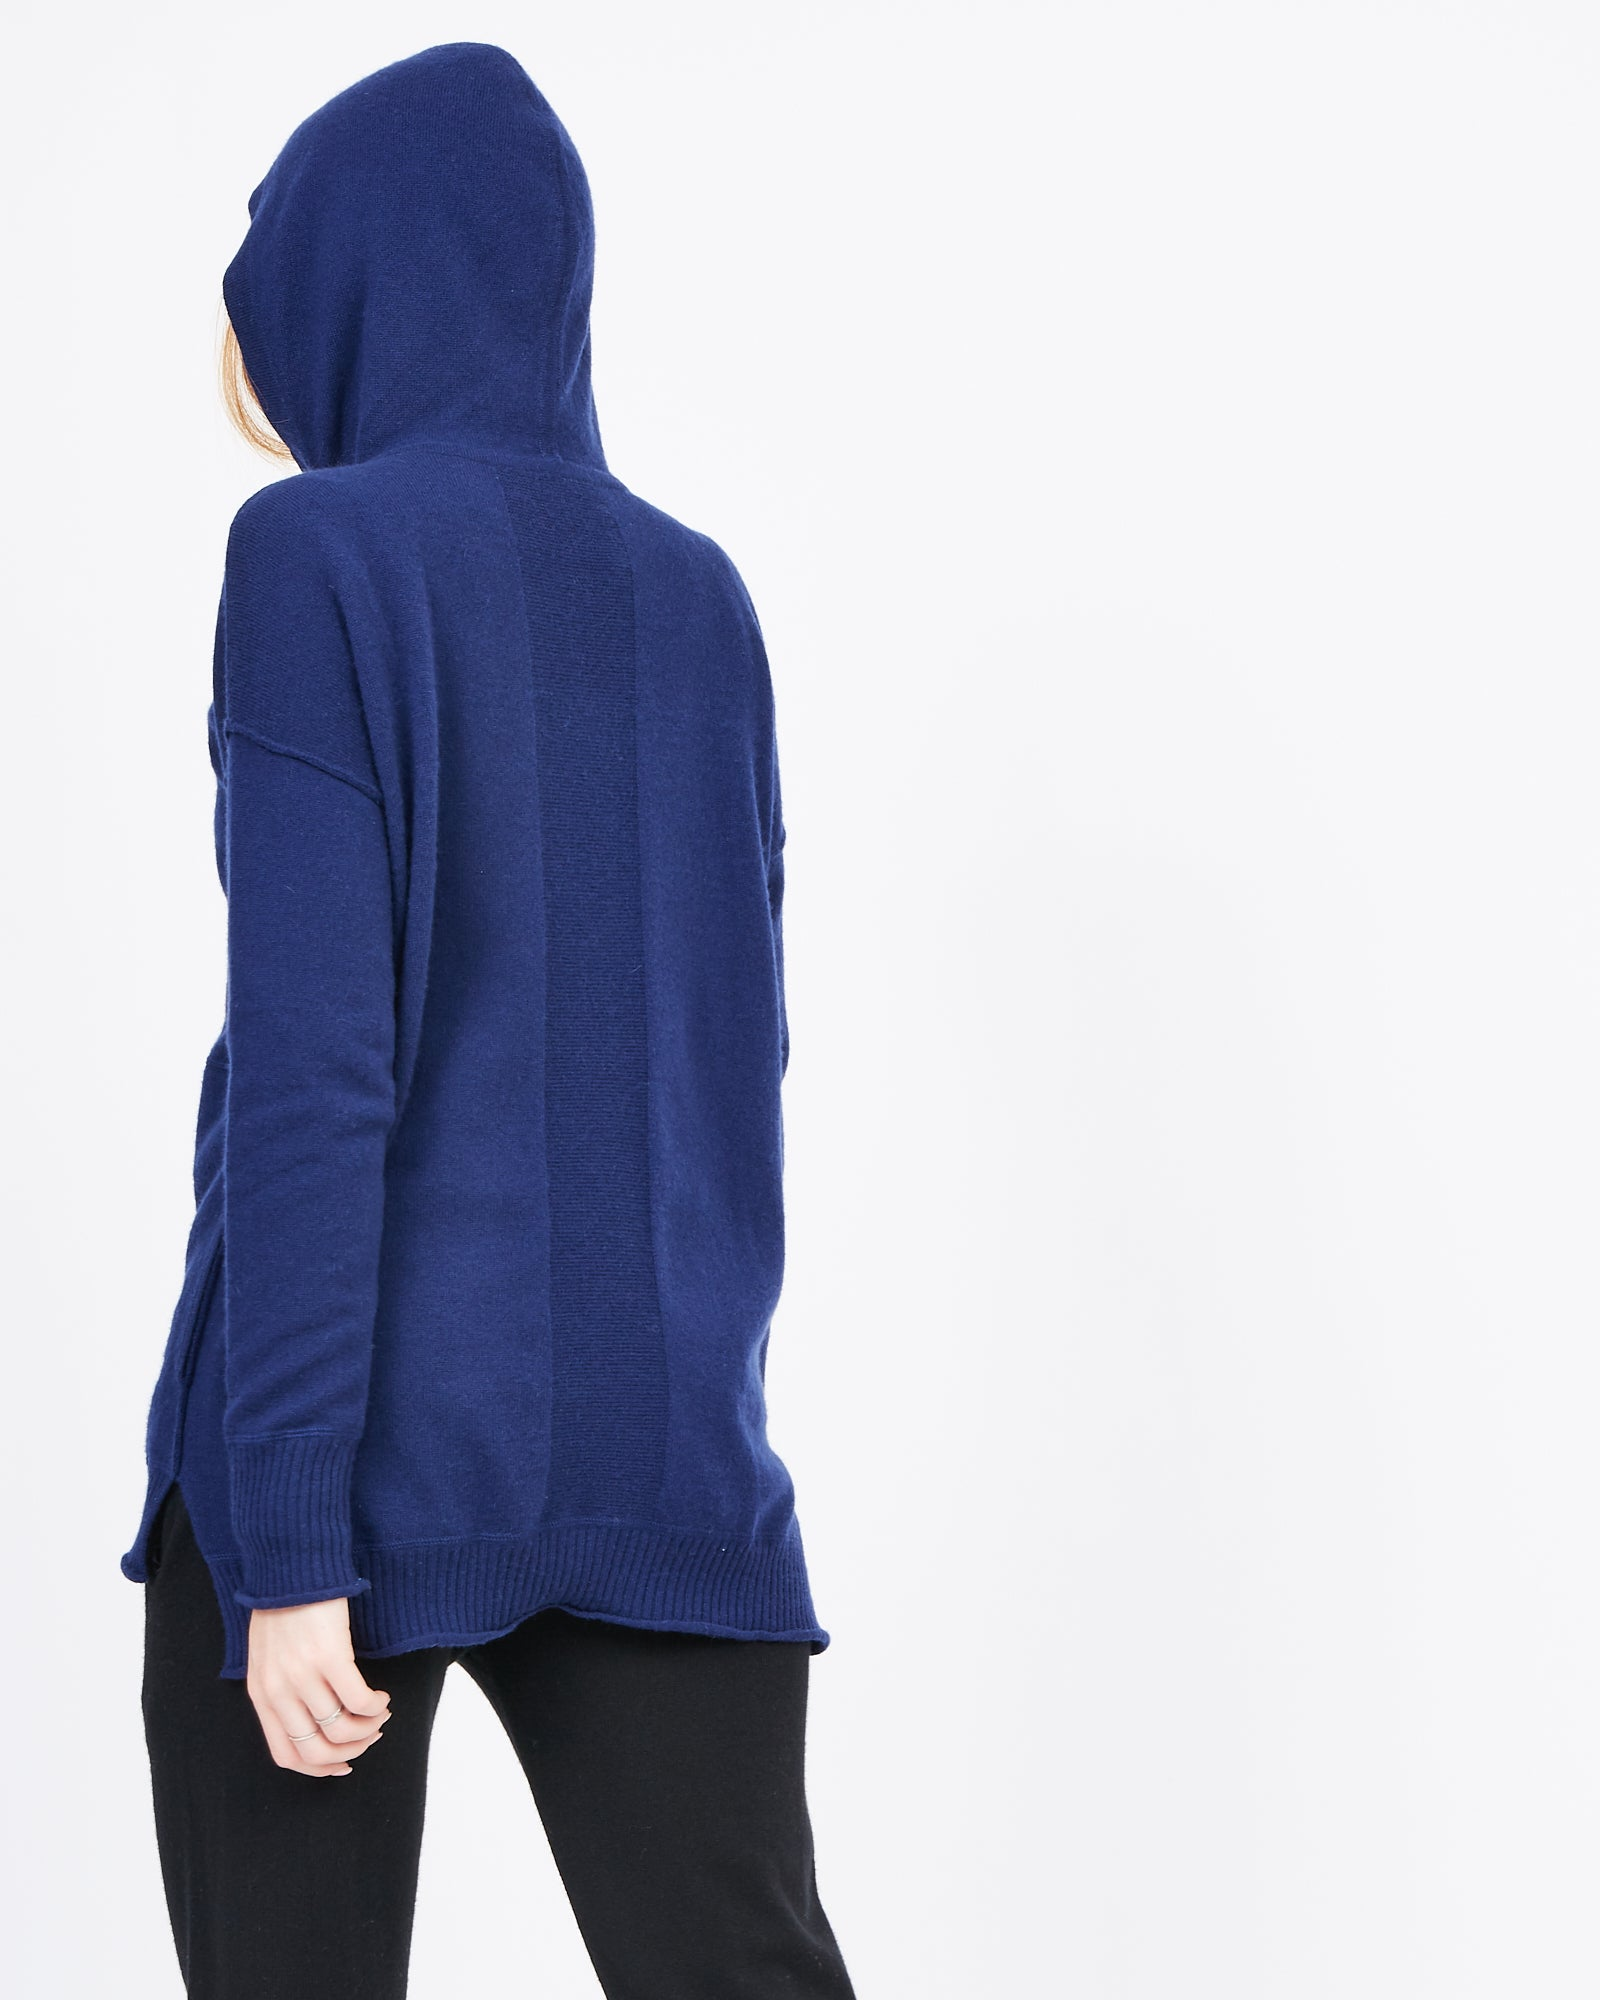 navy cashmere knit